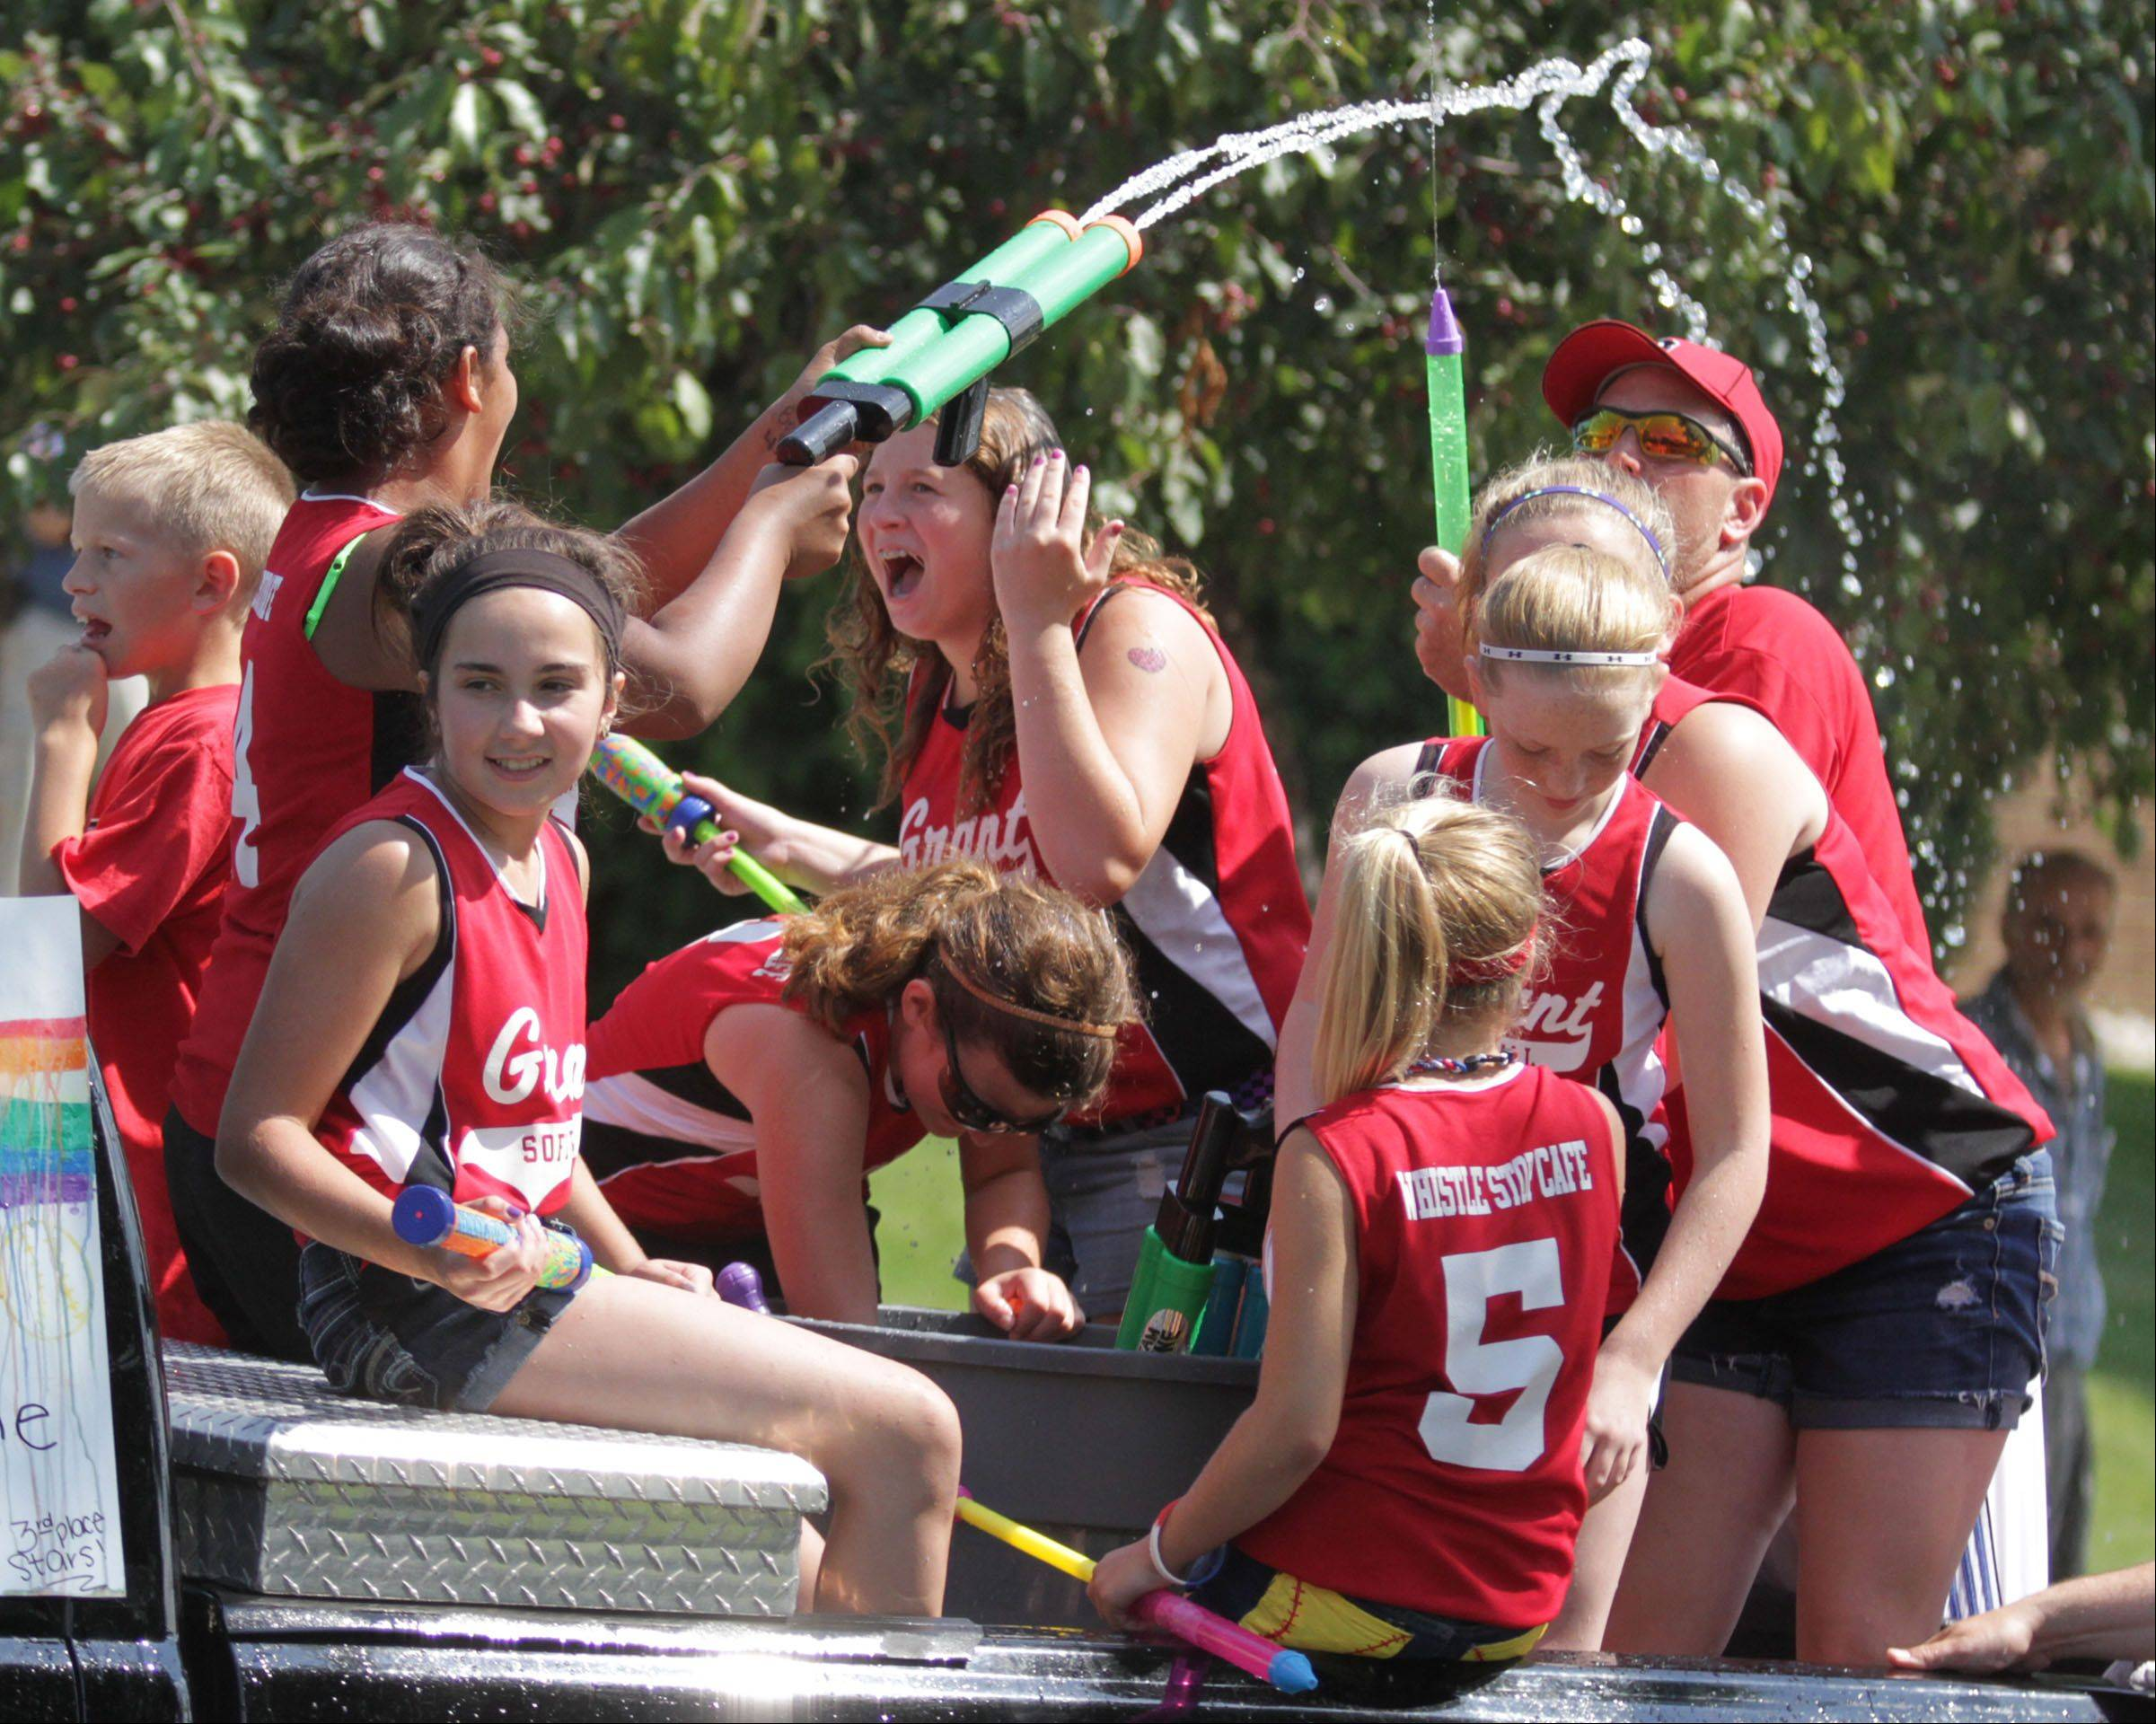 Grant High School summer softball players spray themselves and the crowd watching Saturday's Celebrate Fox Lake parade on Grand Avenue.